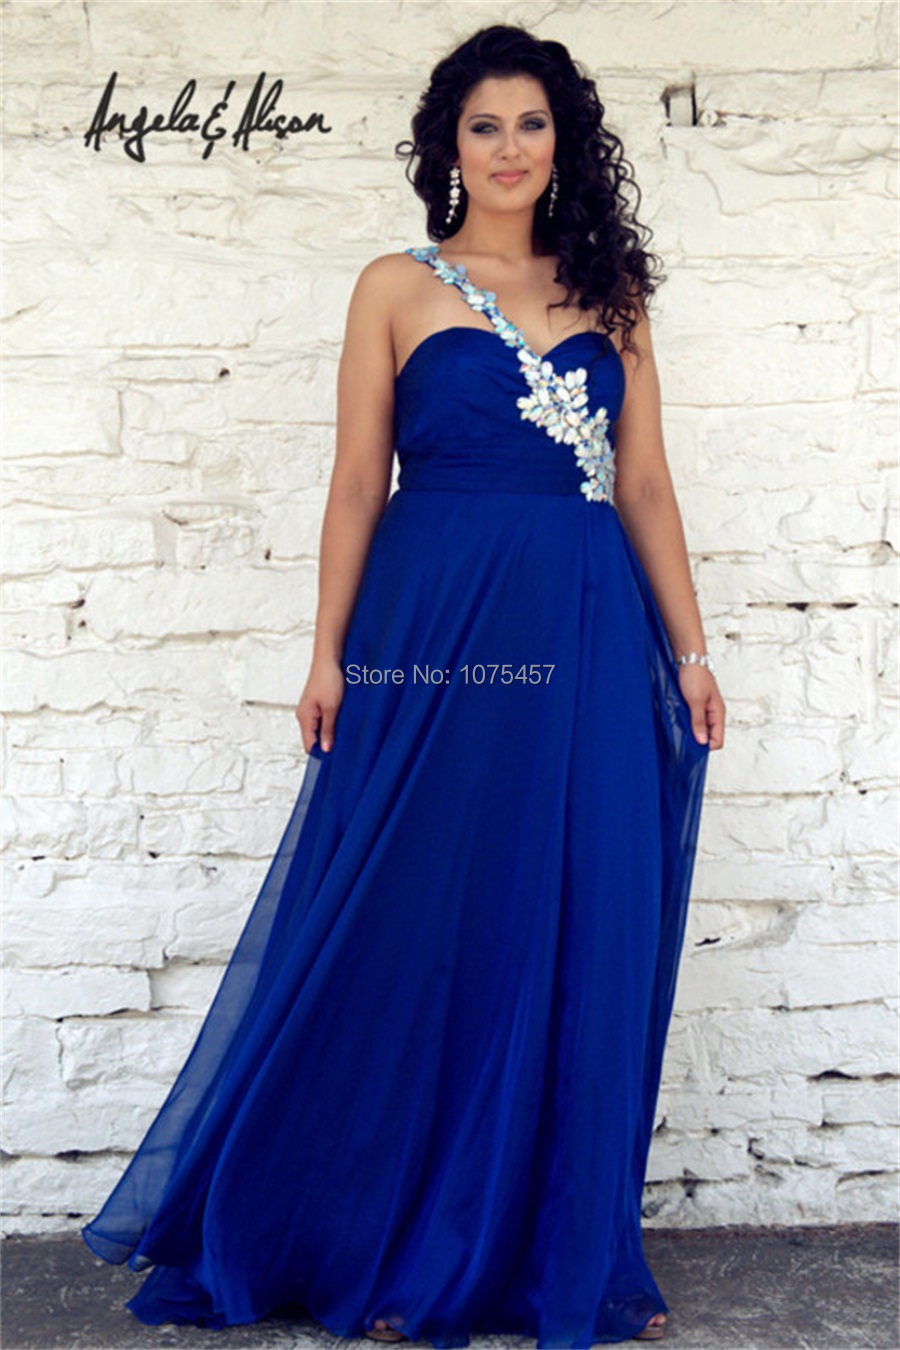 Online Get Cheap Prom Dresses 2015 Royal Blue -Aliexpress.com ...